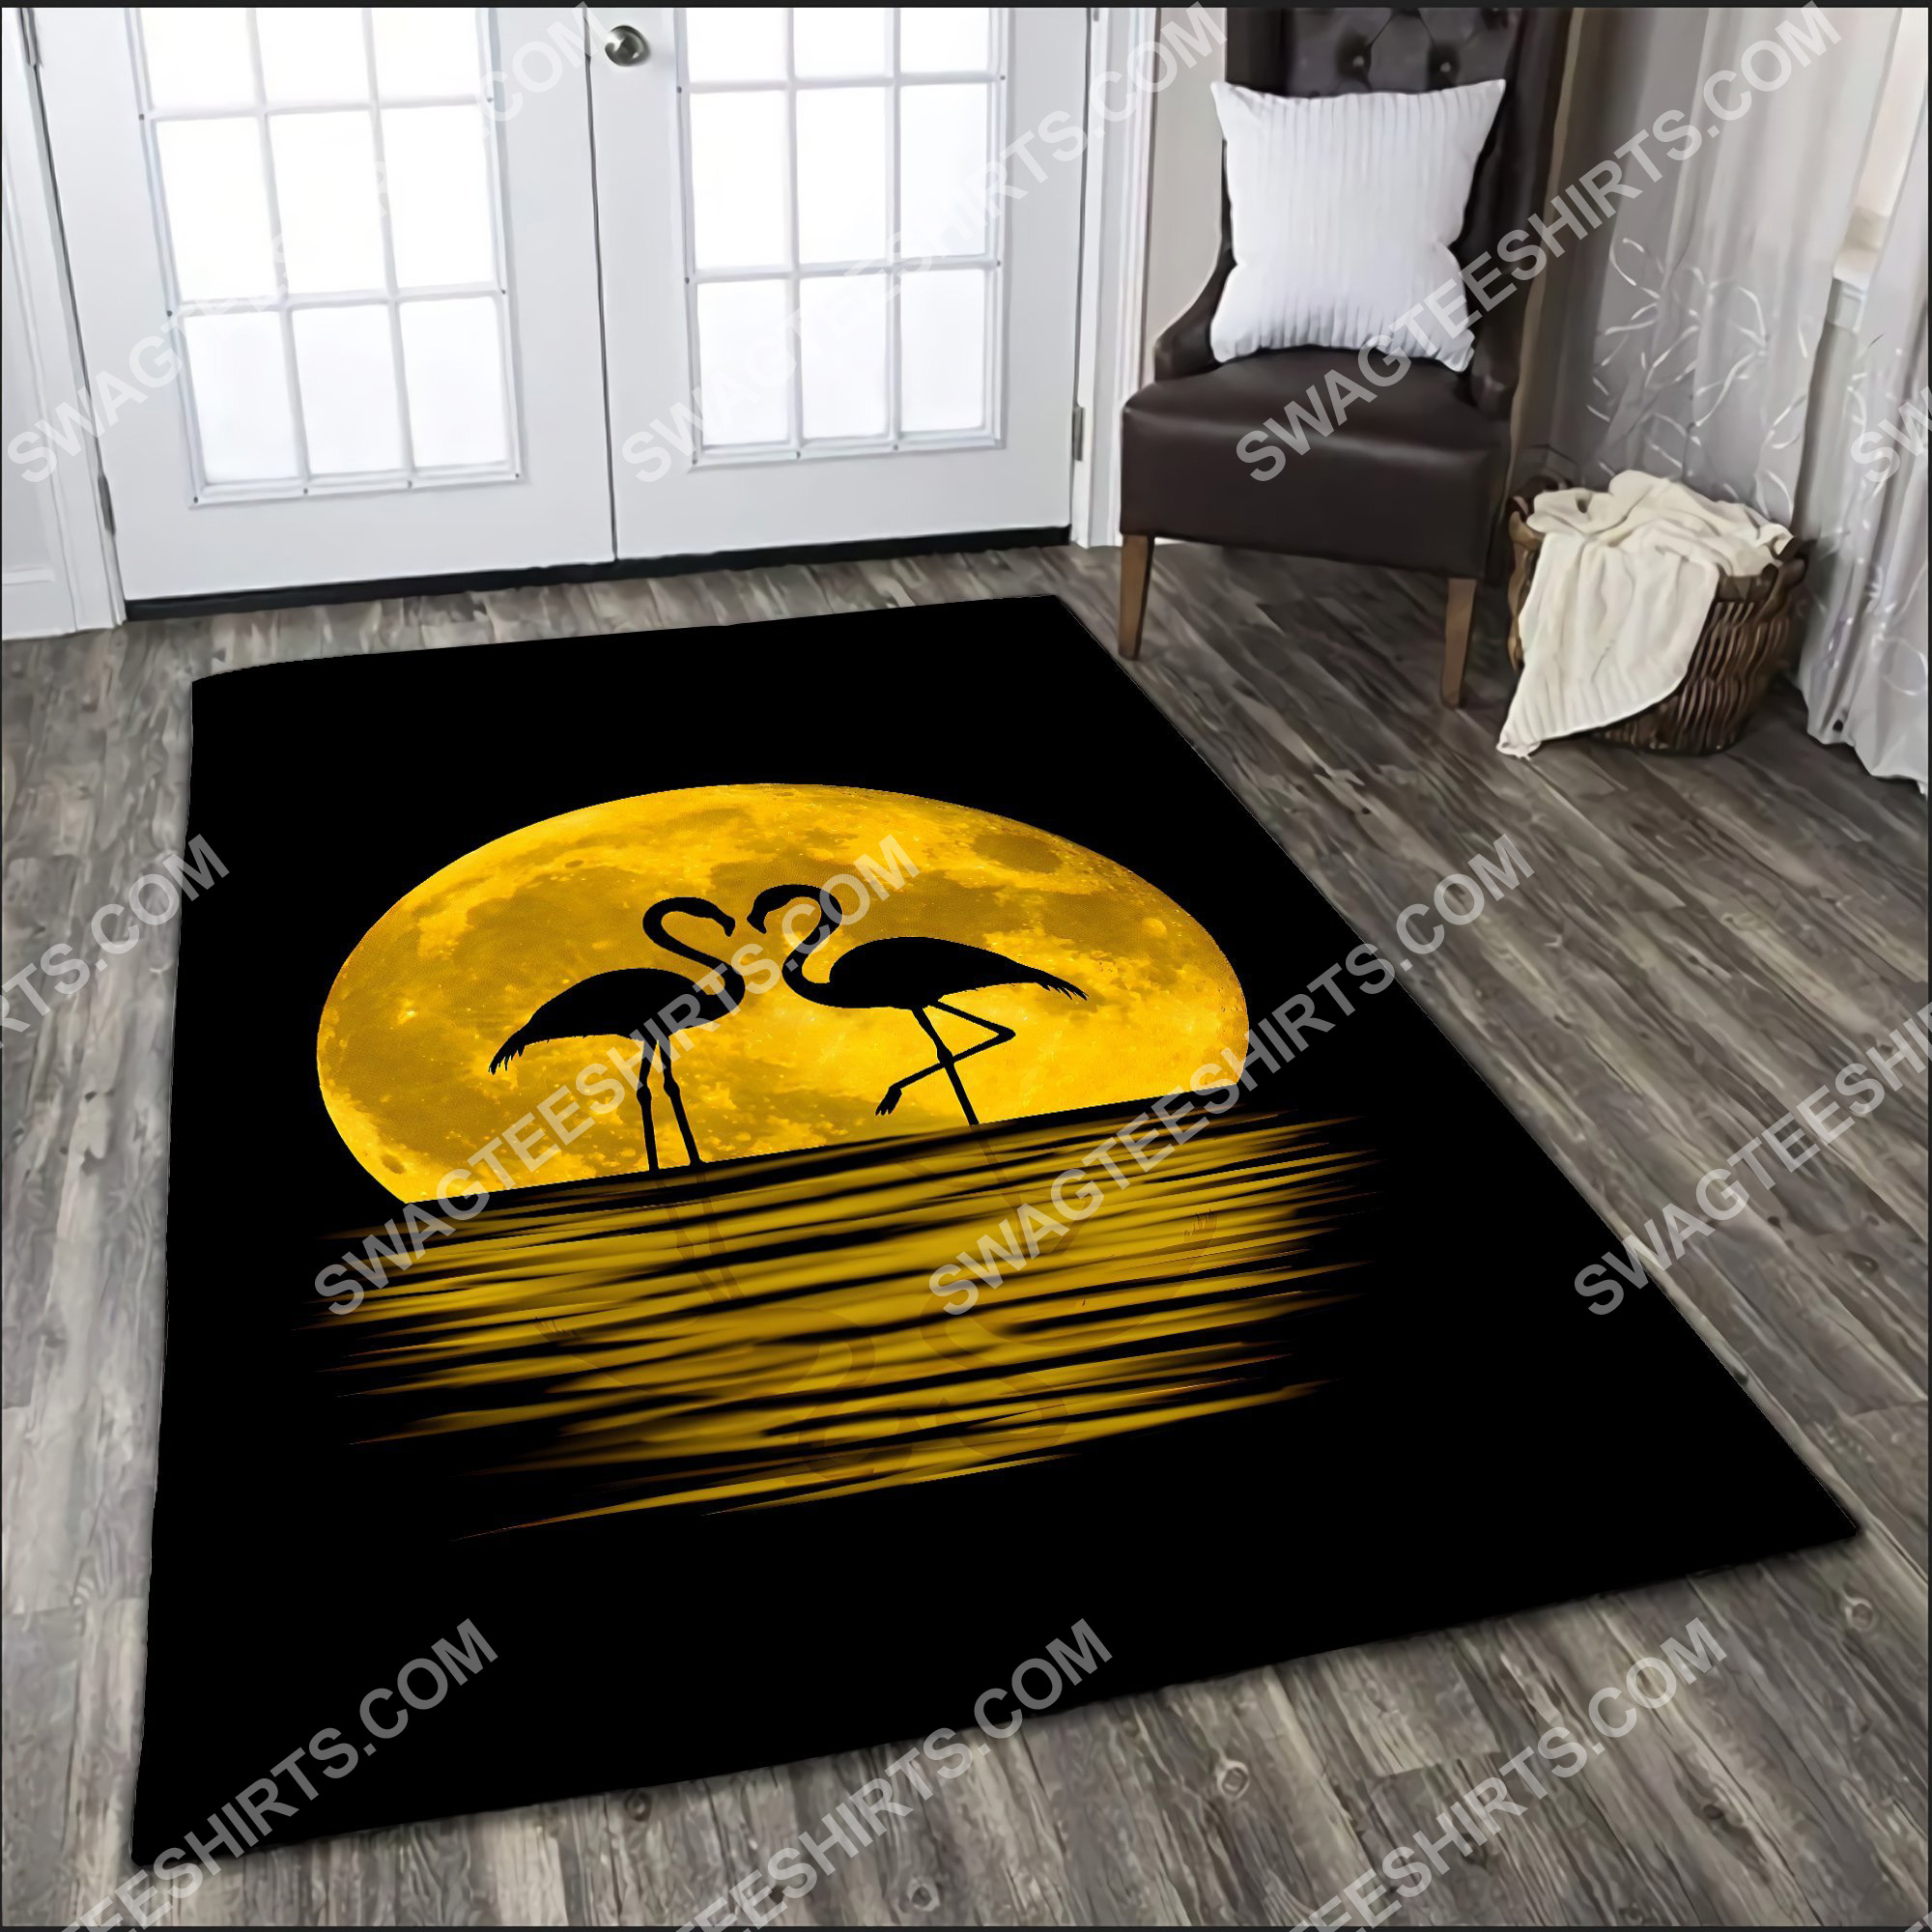 flamingo in the moon all over printed rug 2(1)